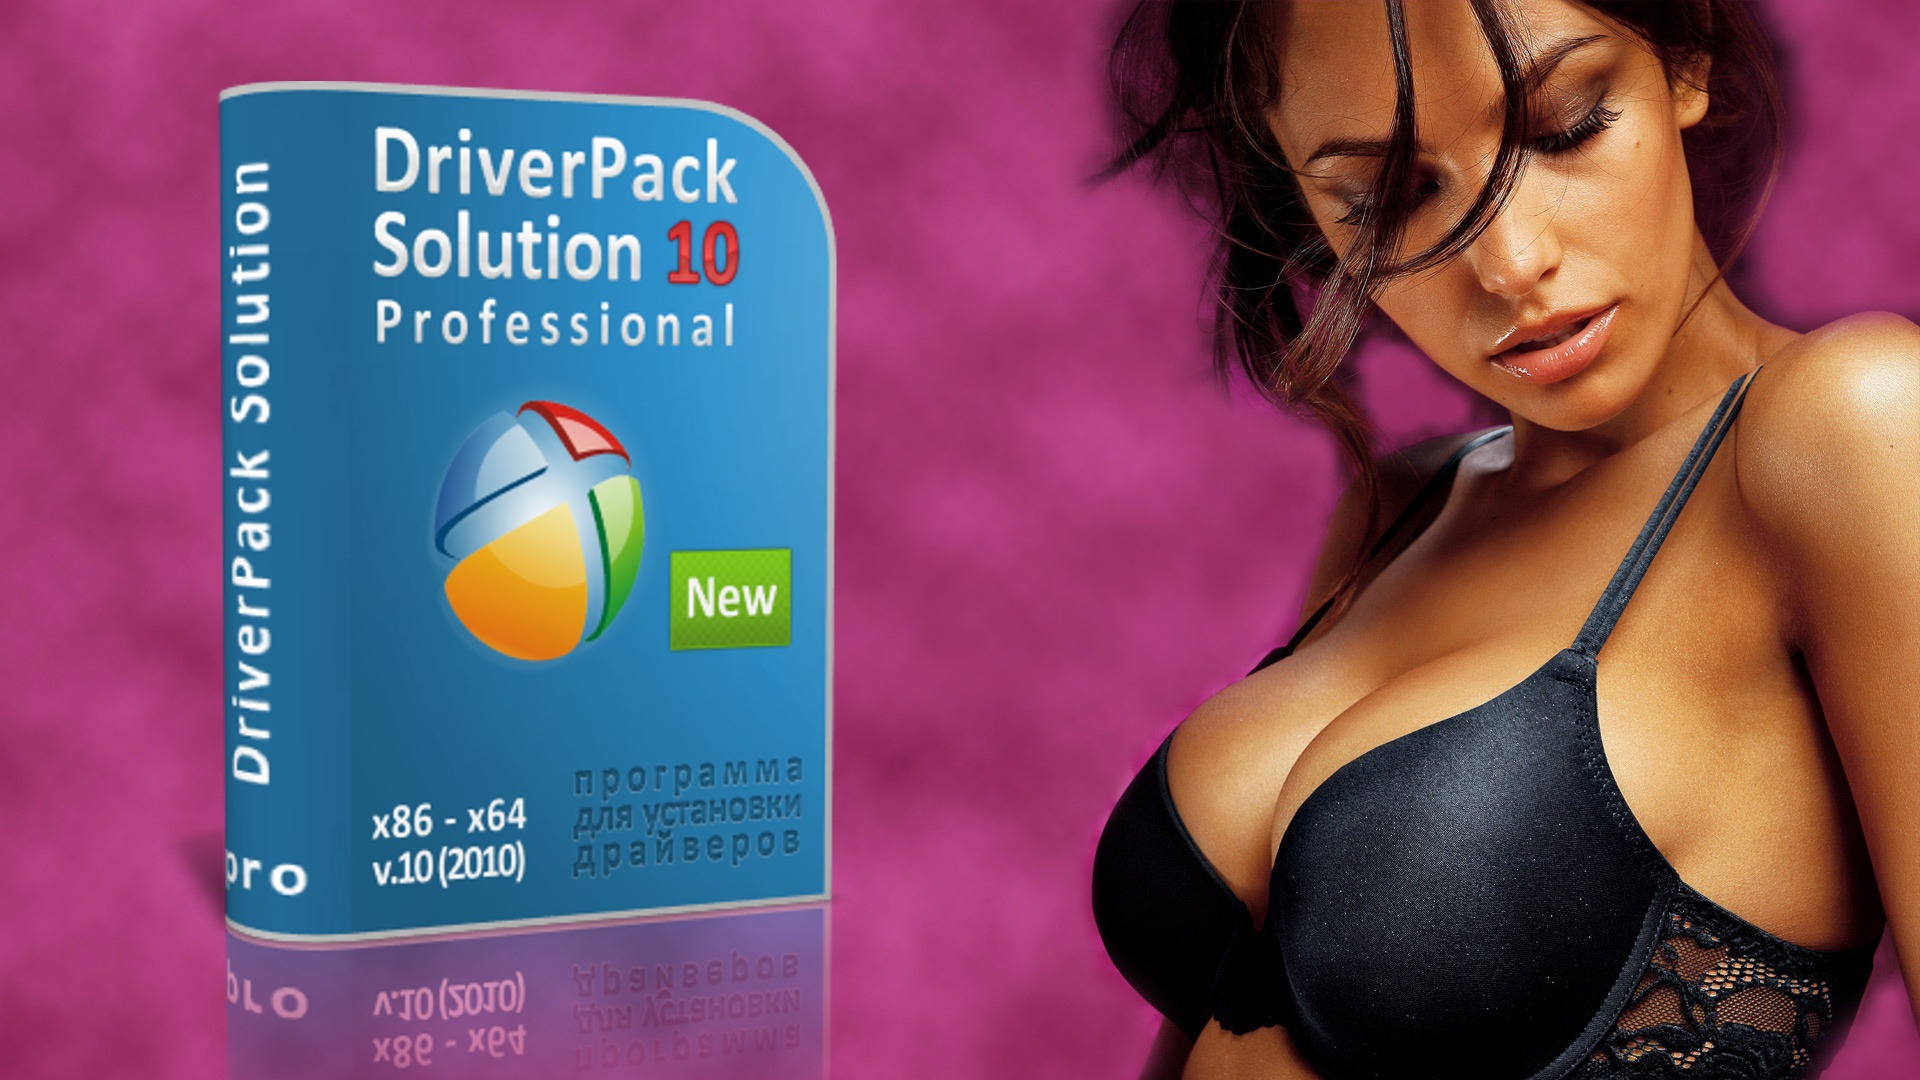 DriverPack Solution 10 Professional DVD (2010)| RUS - ������� � ...